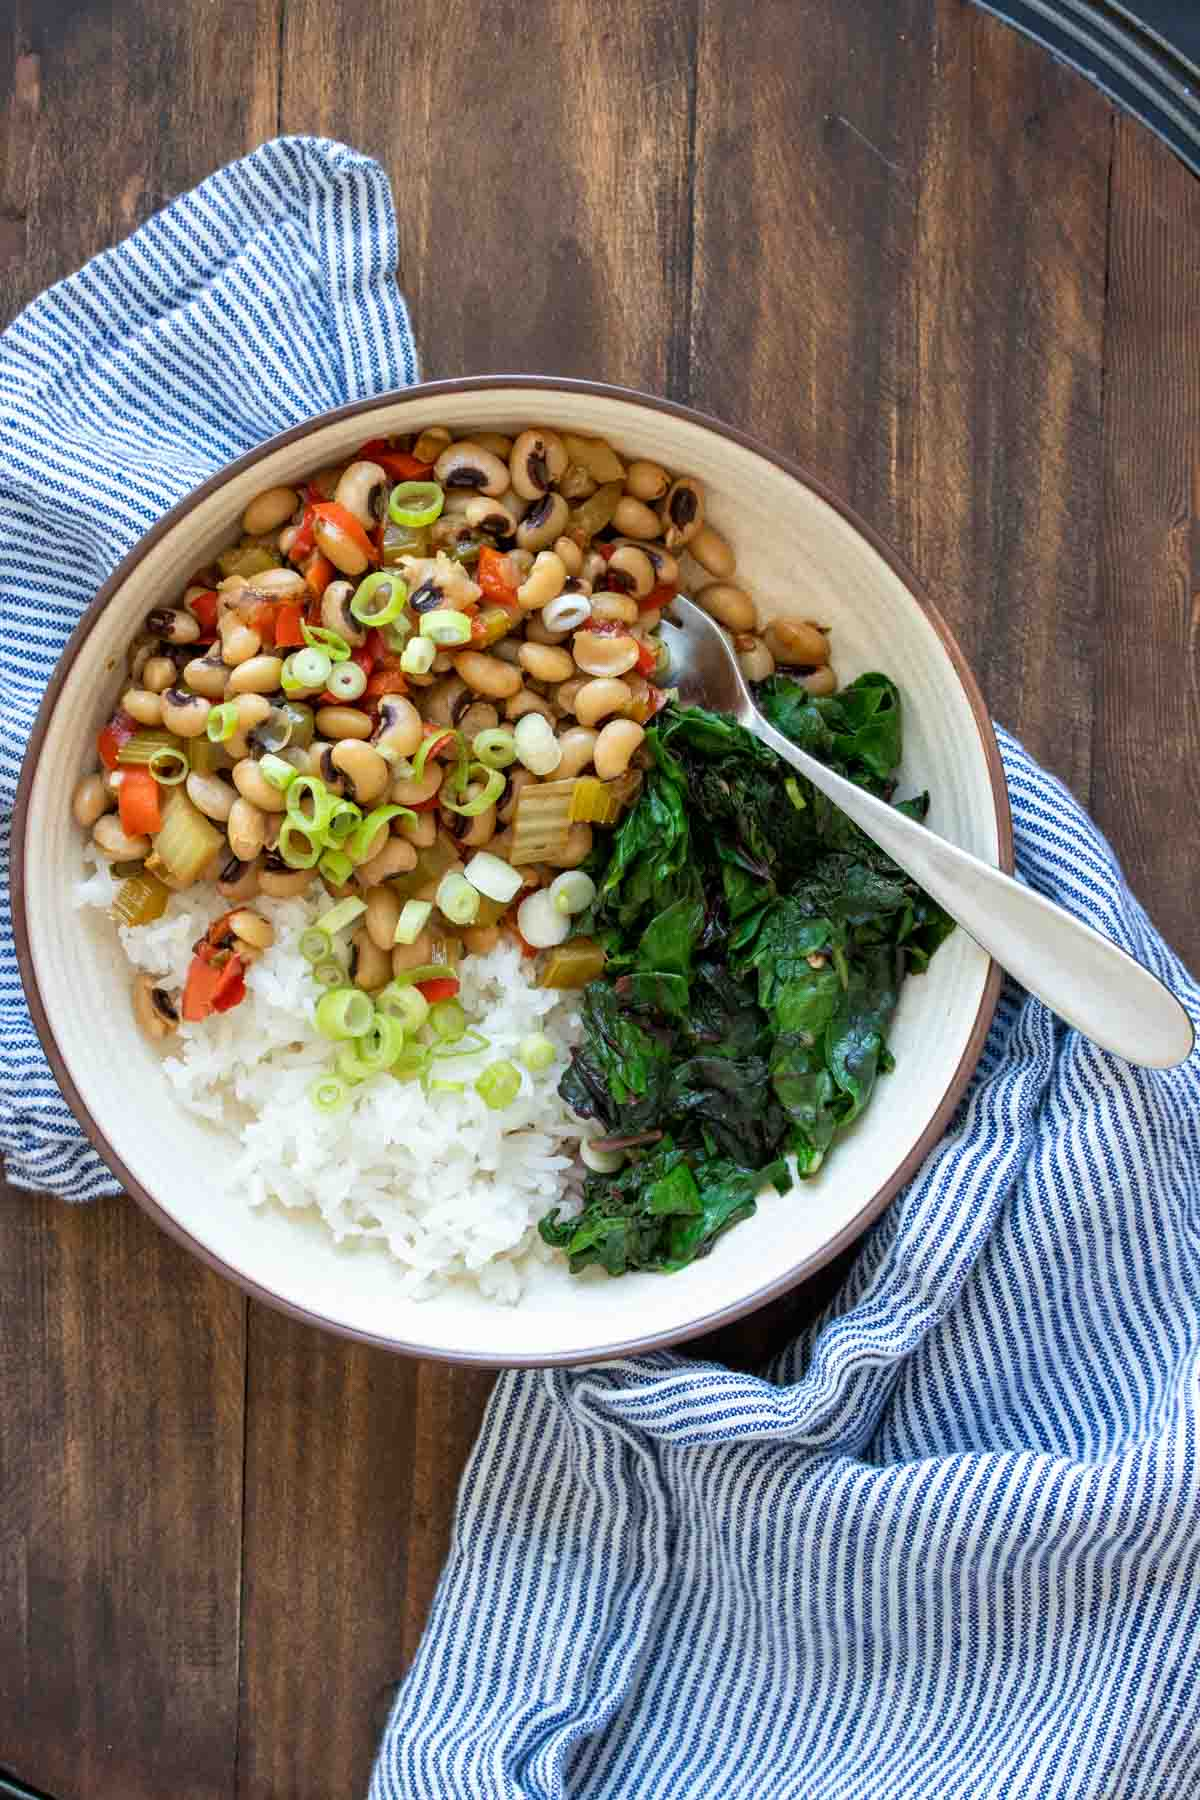 Cream bowl filled with rice, black eyed peas and swiss chard